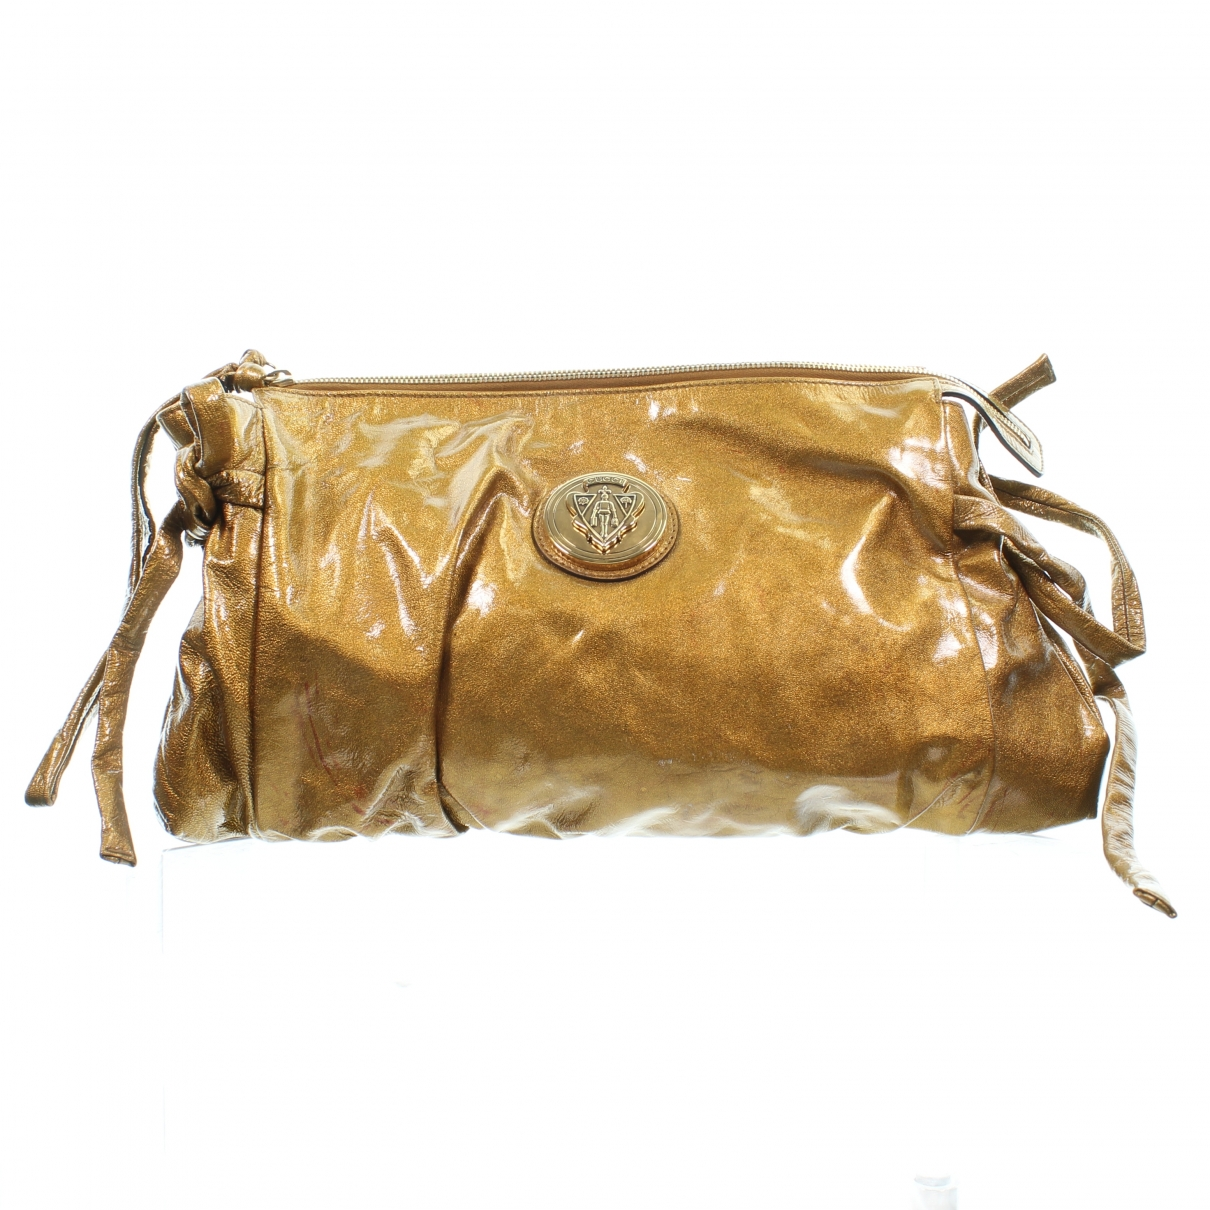 Gucci Hysteria Gold Leather Clutch bag for Women \N